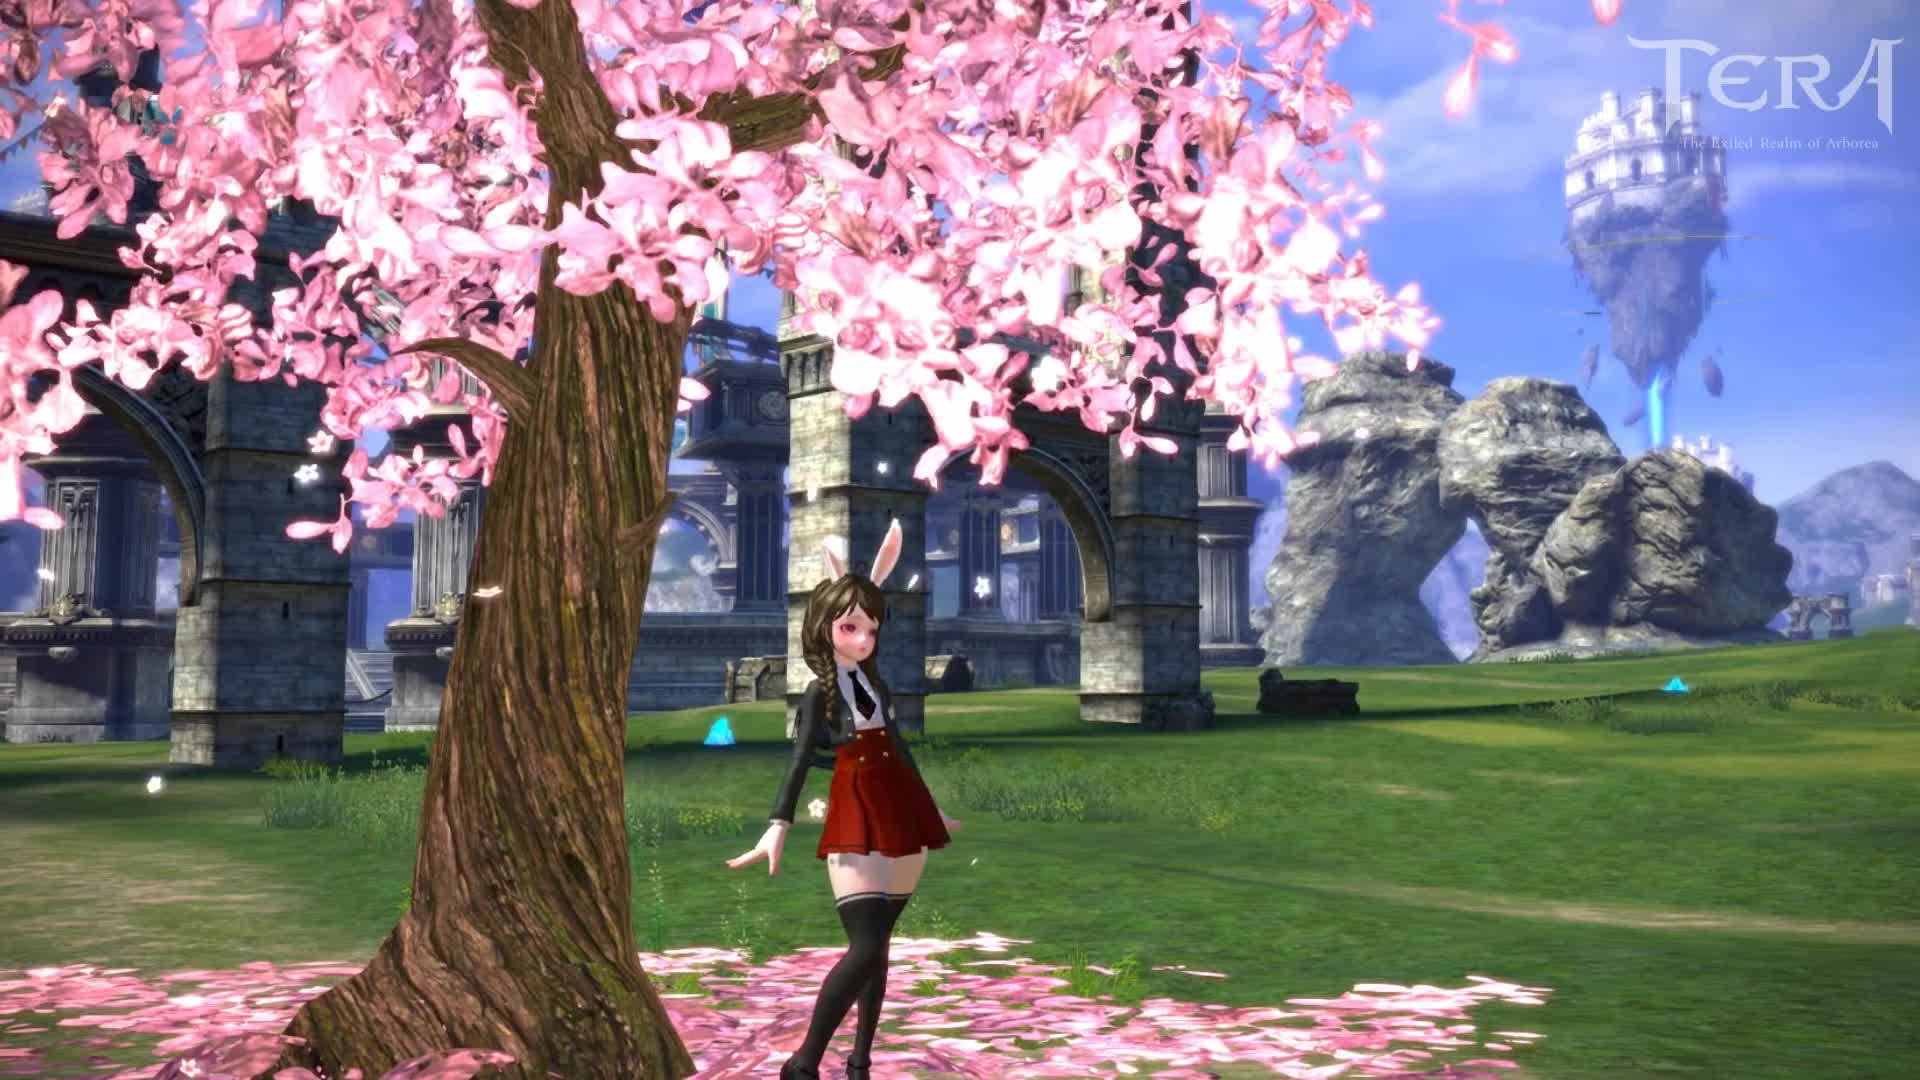 Game On, Gaming, MMORPG, Online Game, Pmang, Pmang TERA, TERA, TERA:The Exiled Realm of Arborea, 【公式】MMORPG「TERA」ひらひら桜スタンプ紹介動画 GIFs